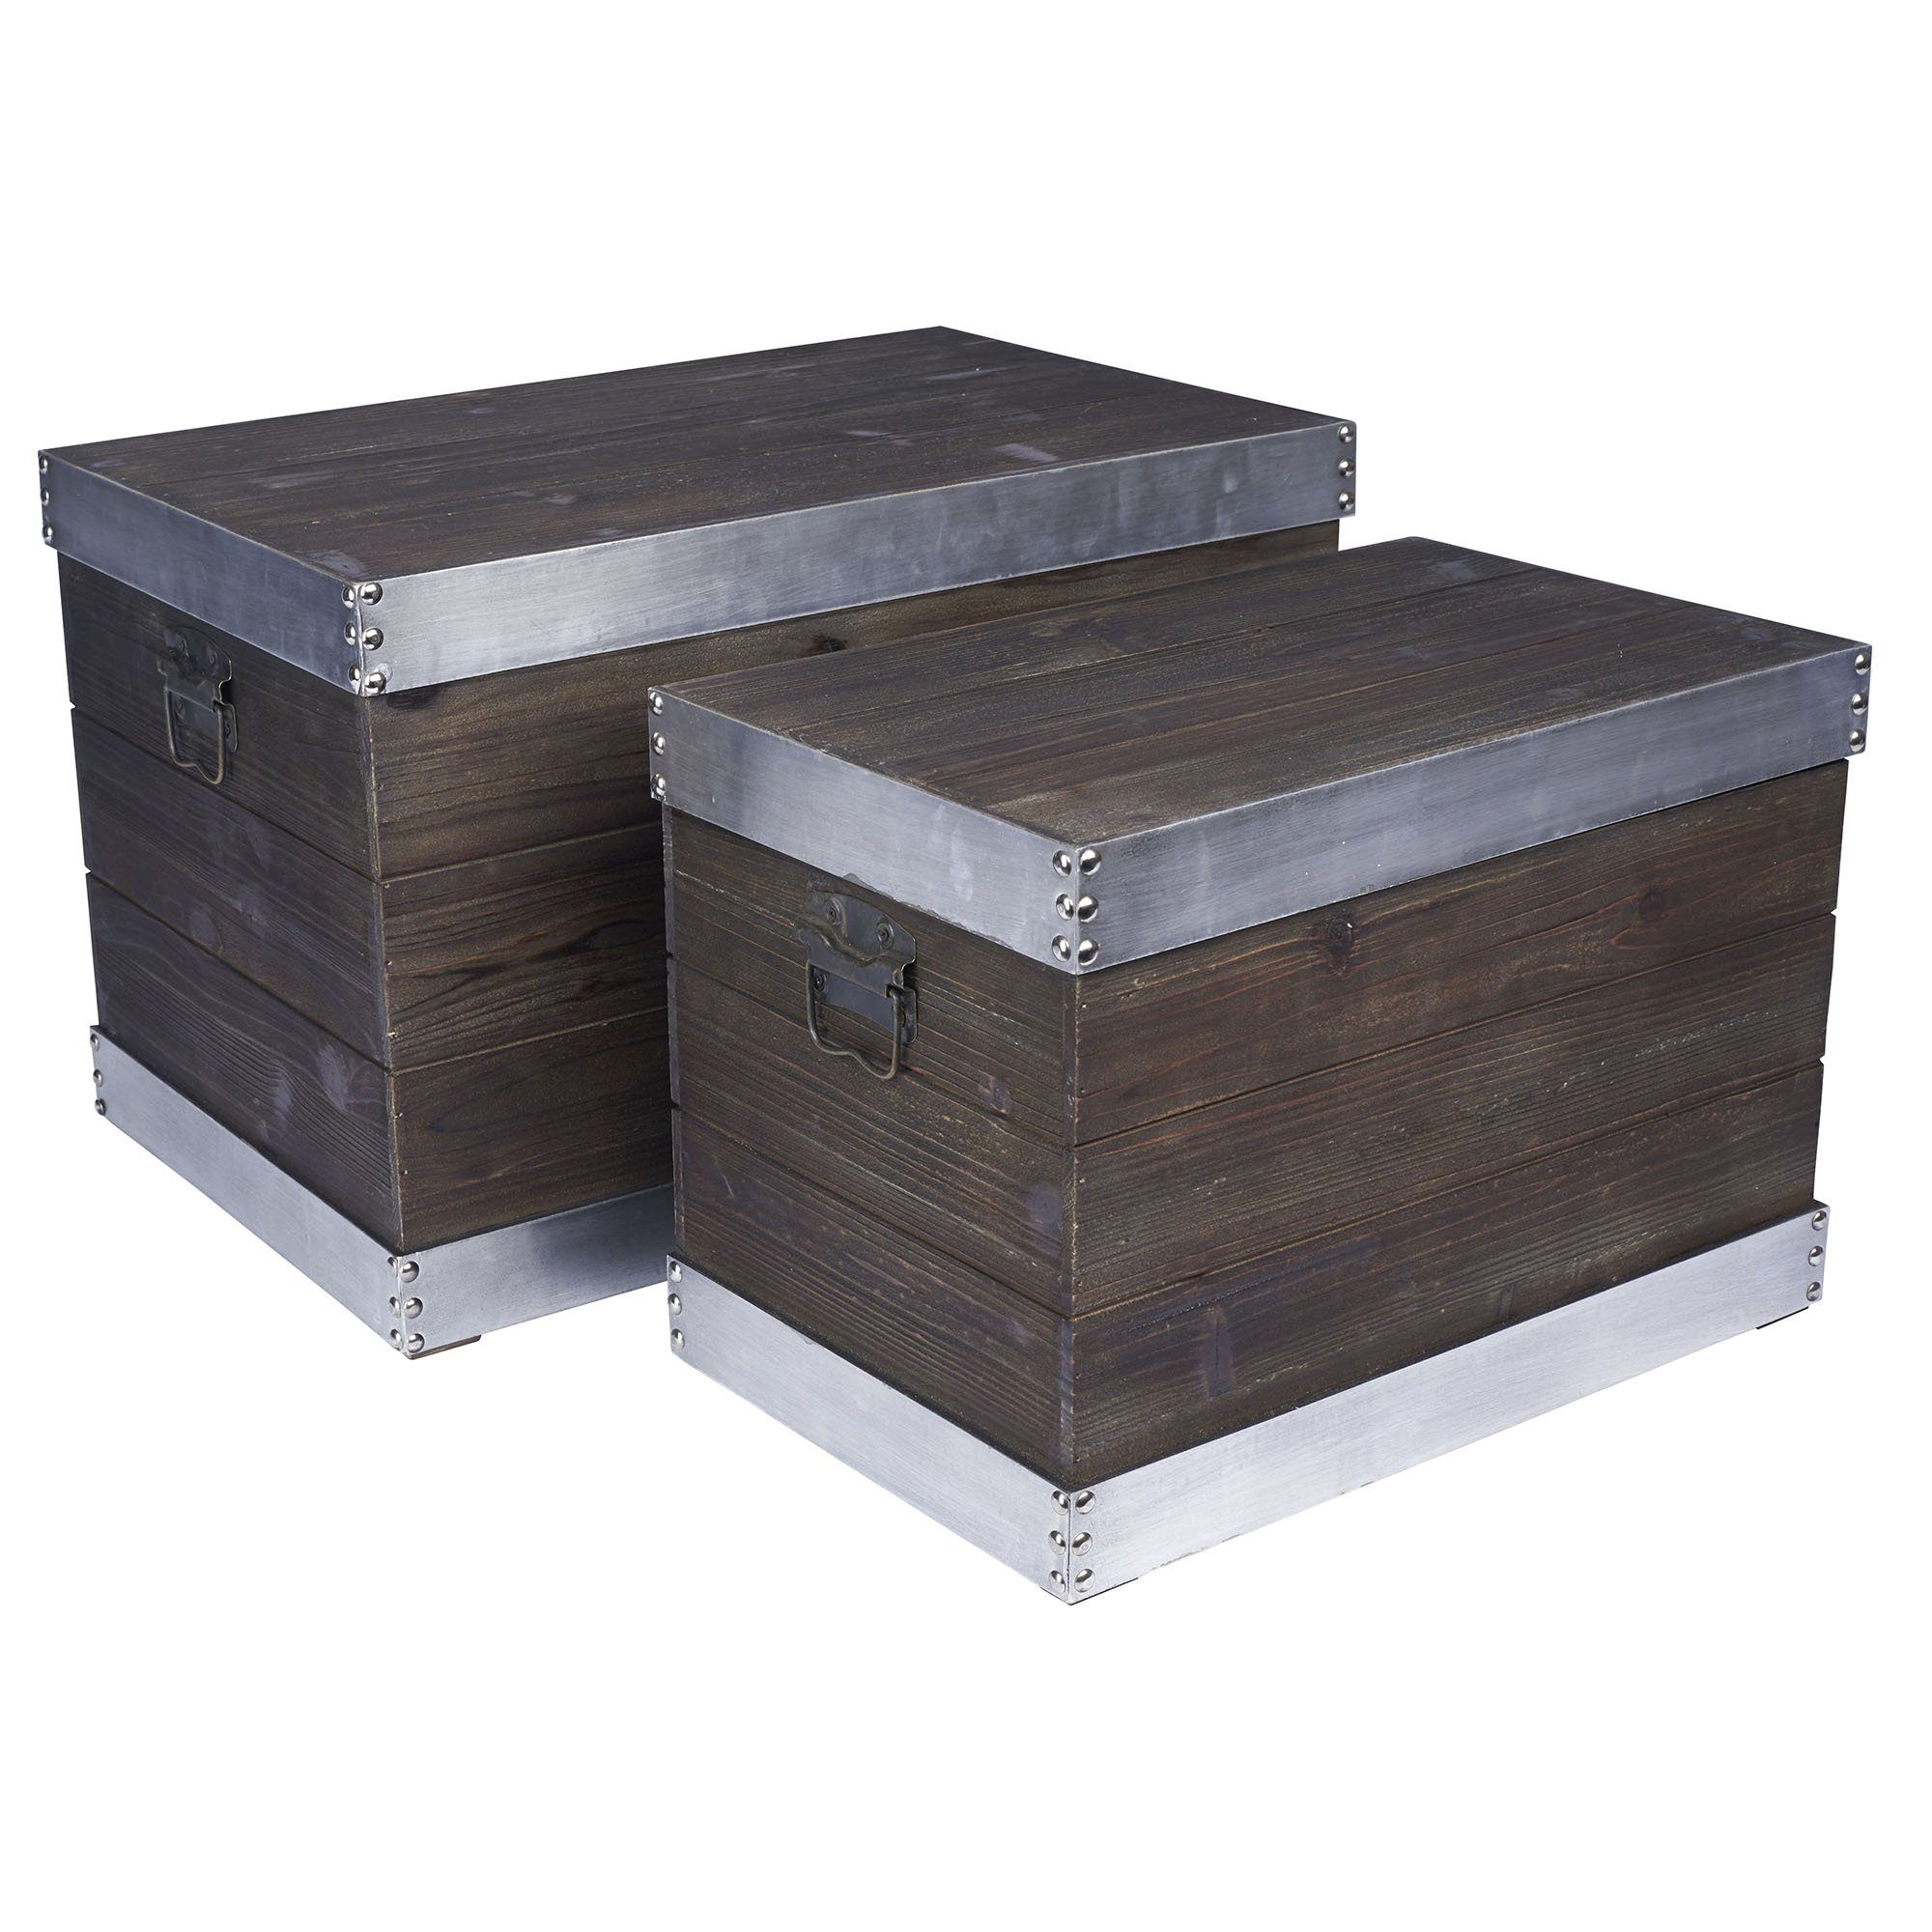 Household Essentials 2 Piece Wooden Storage Trunk with Silver Trim, Large/Small